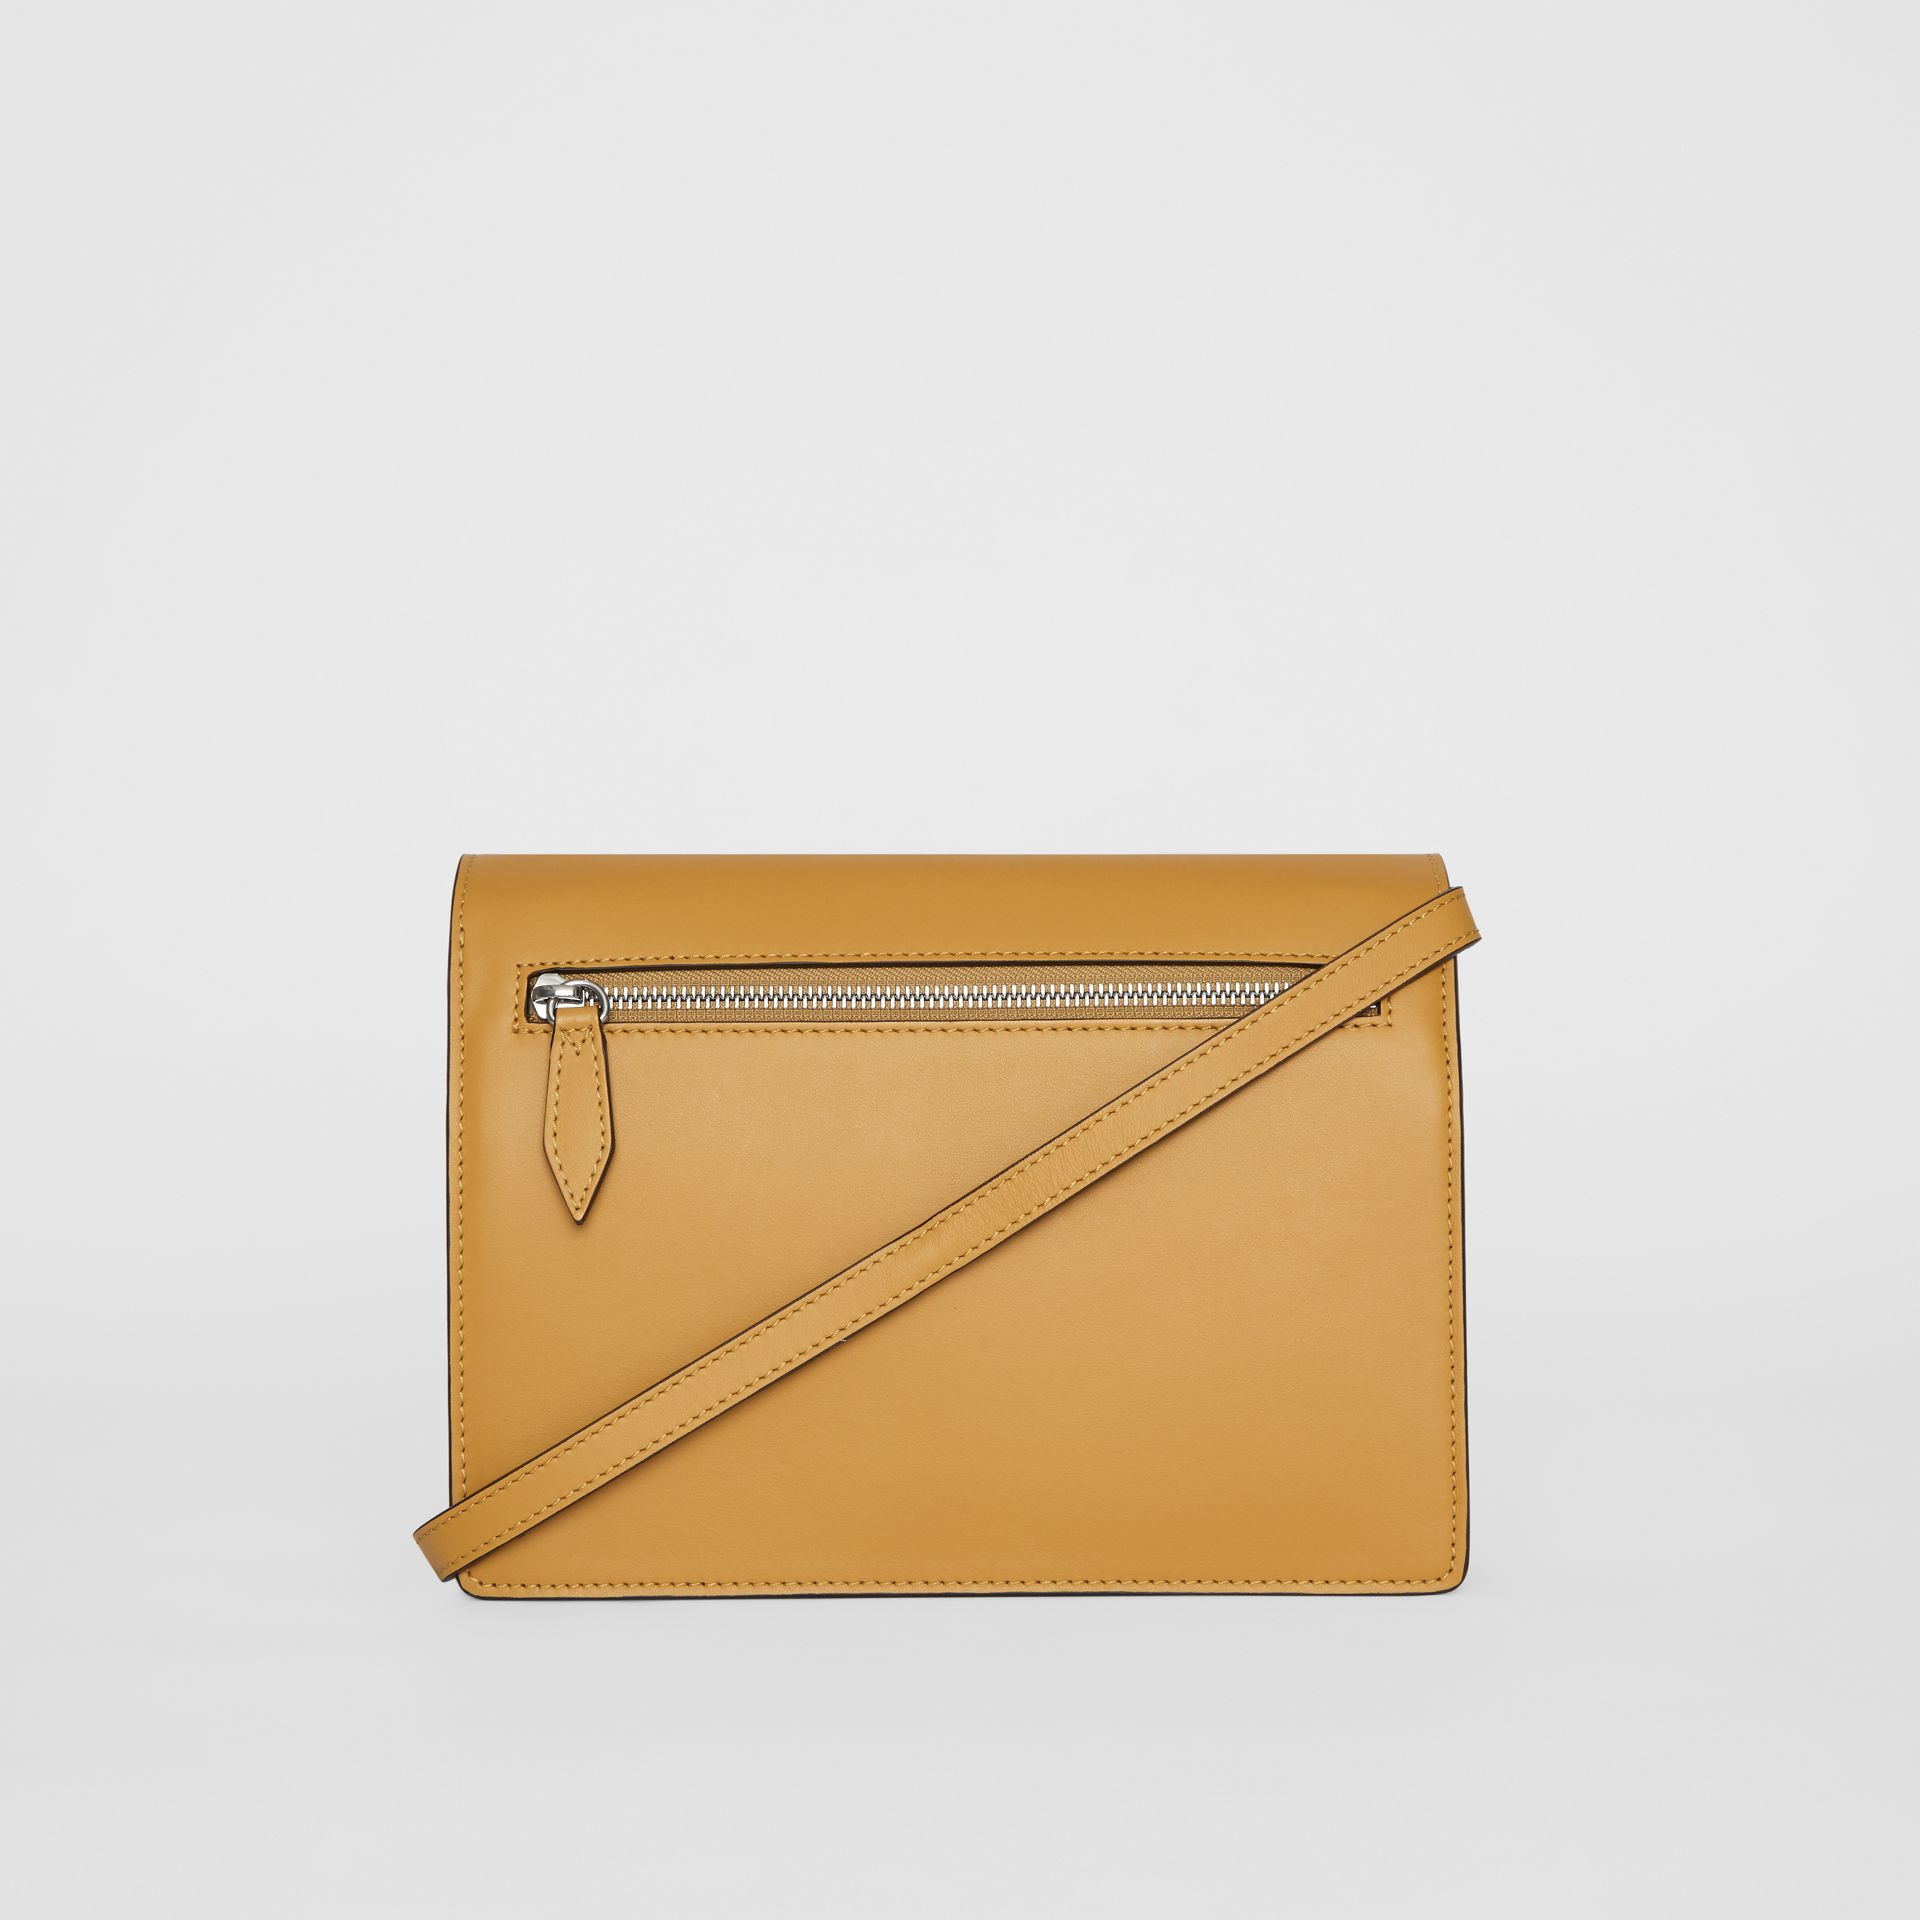 Two-tone Leather Crossbody Bag in Limestone/cornflower Yellow - Women | Burberry United Kingdom - gallery image 7